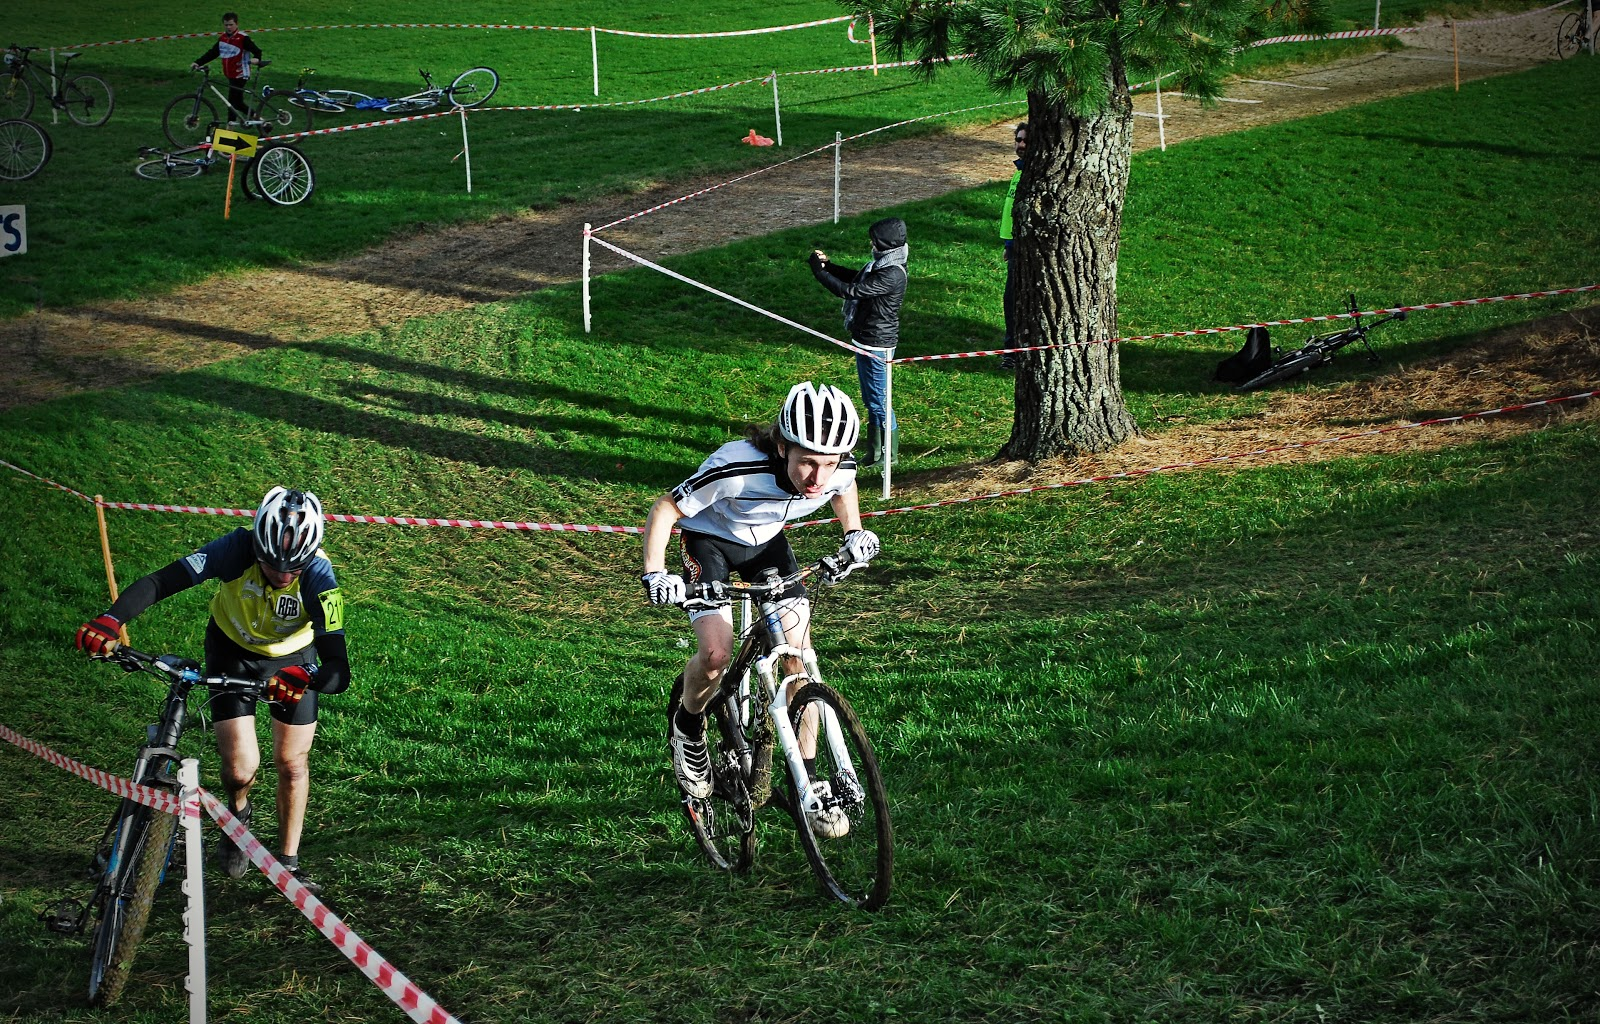 james davey racing blog south west cyclo x round 7. Black Bedroom Furniture Sets. Home Design Ideas